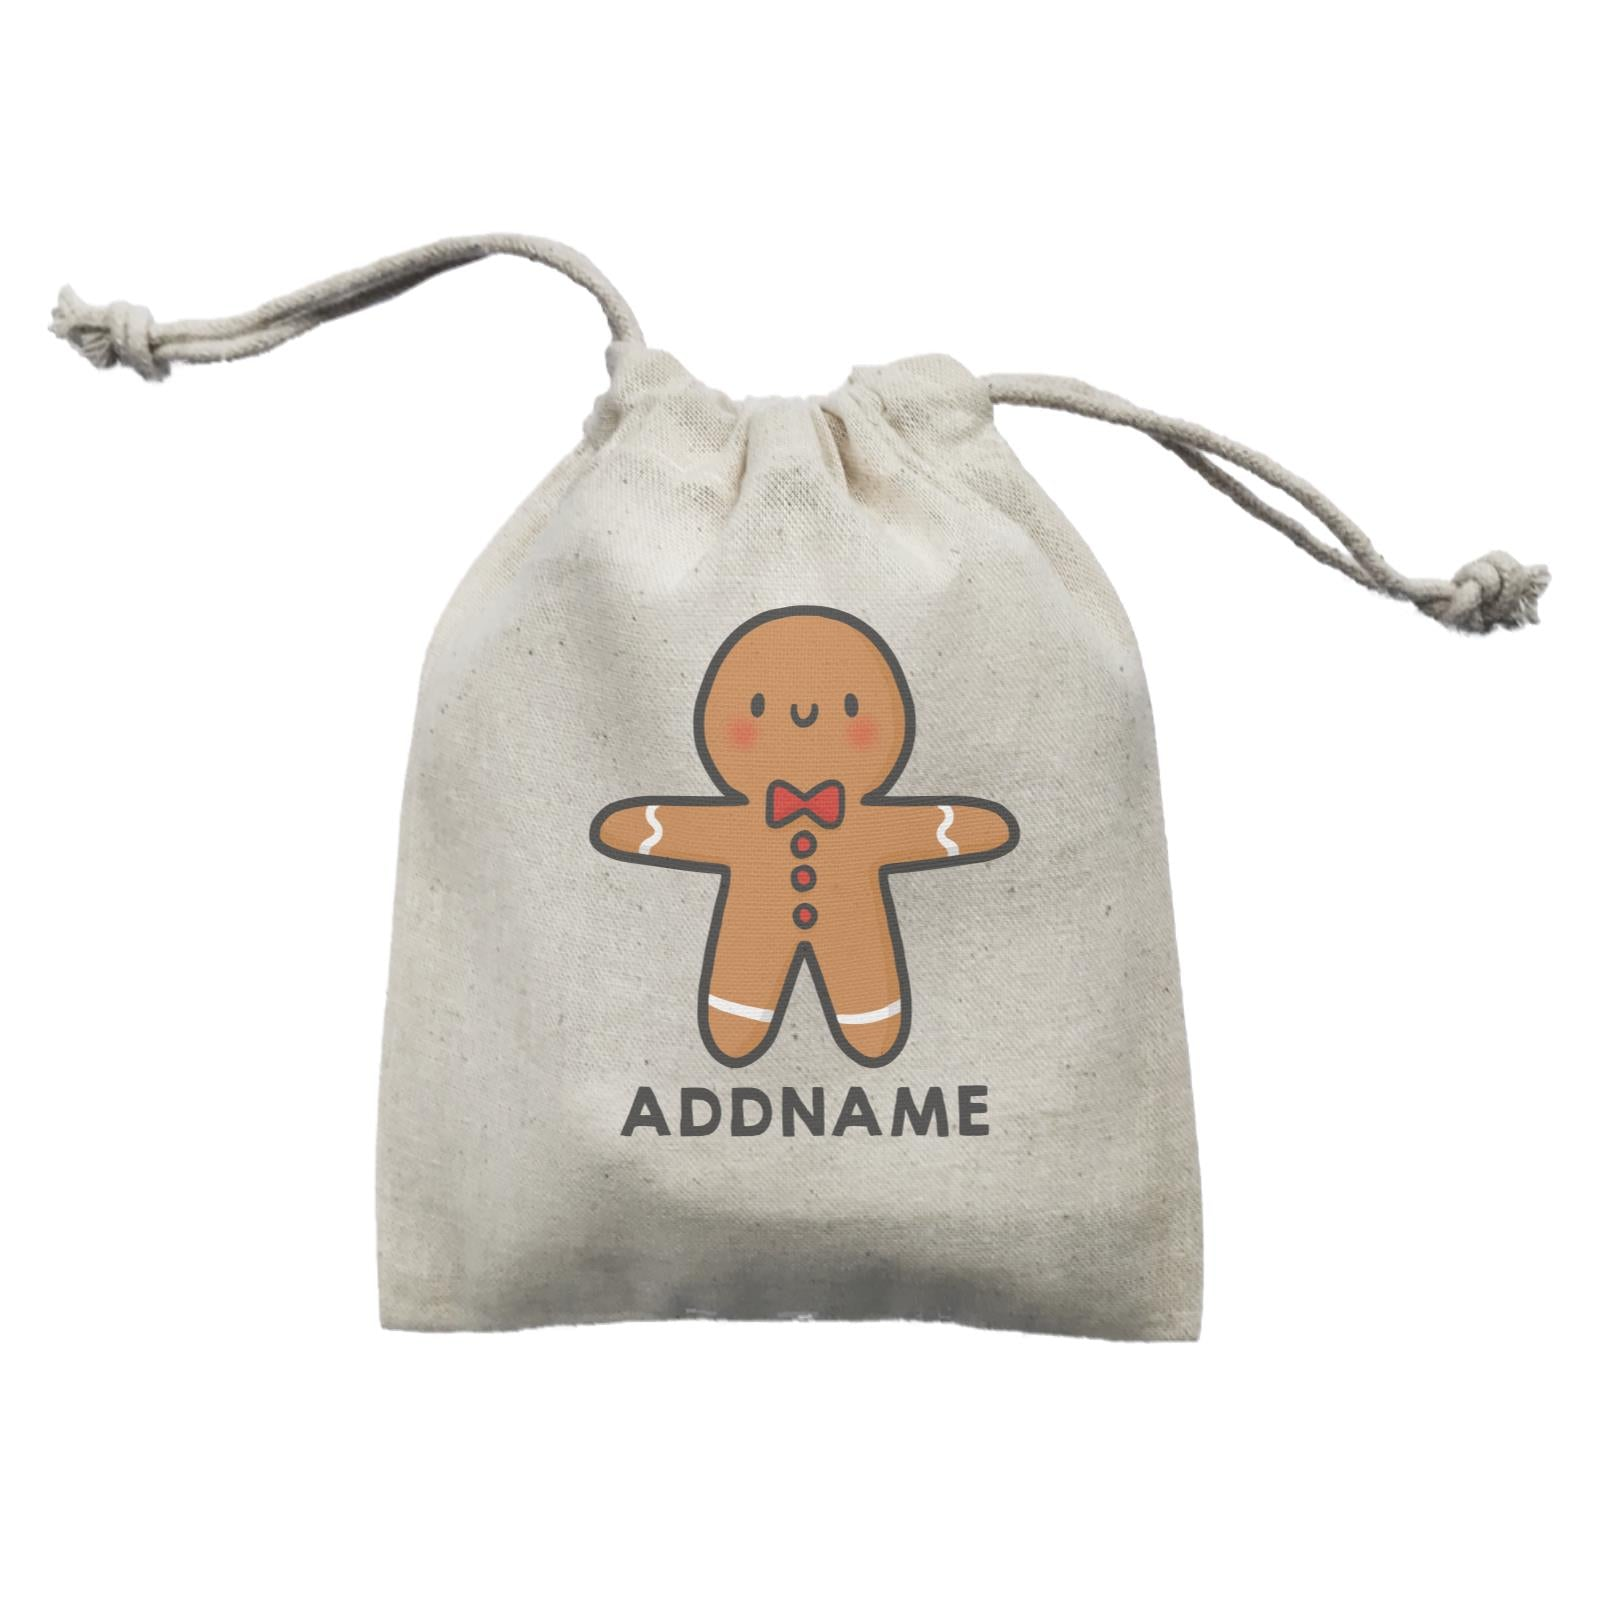 Xmas Cute Gingerbread Man Addname Mini Accessories Mini Pouch